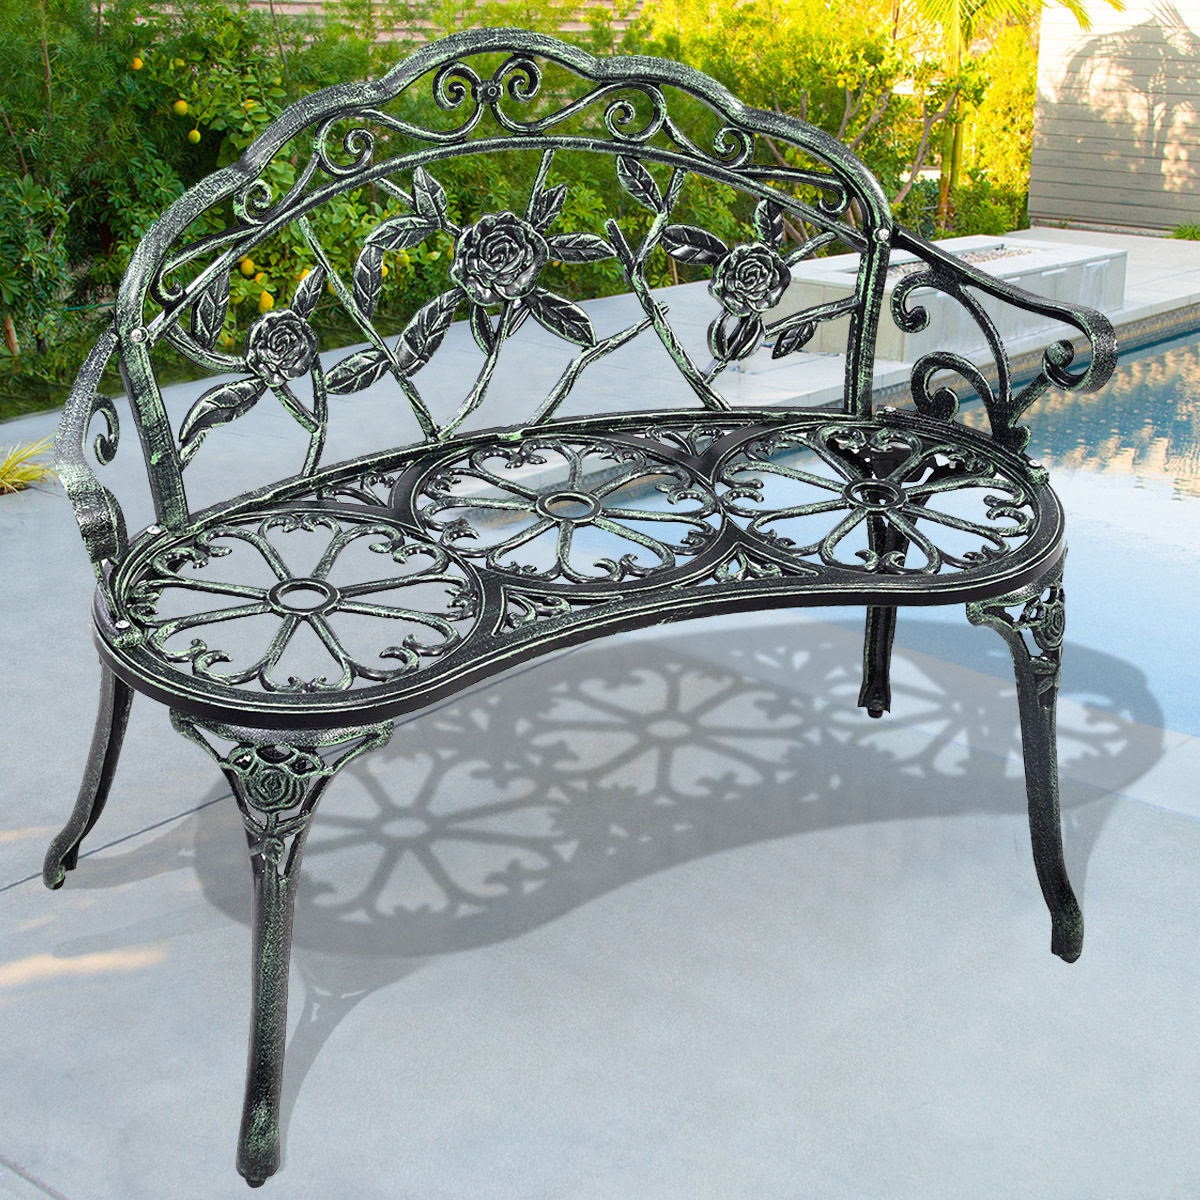 Small Garden Bench Costway Patio Garden Bench Chair Style Porch Cast Aluminum Outdoor Rose Antique Green